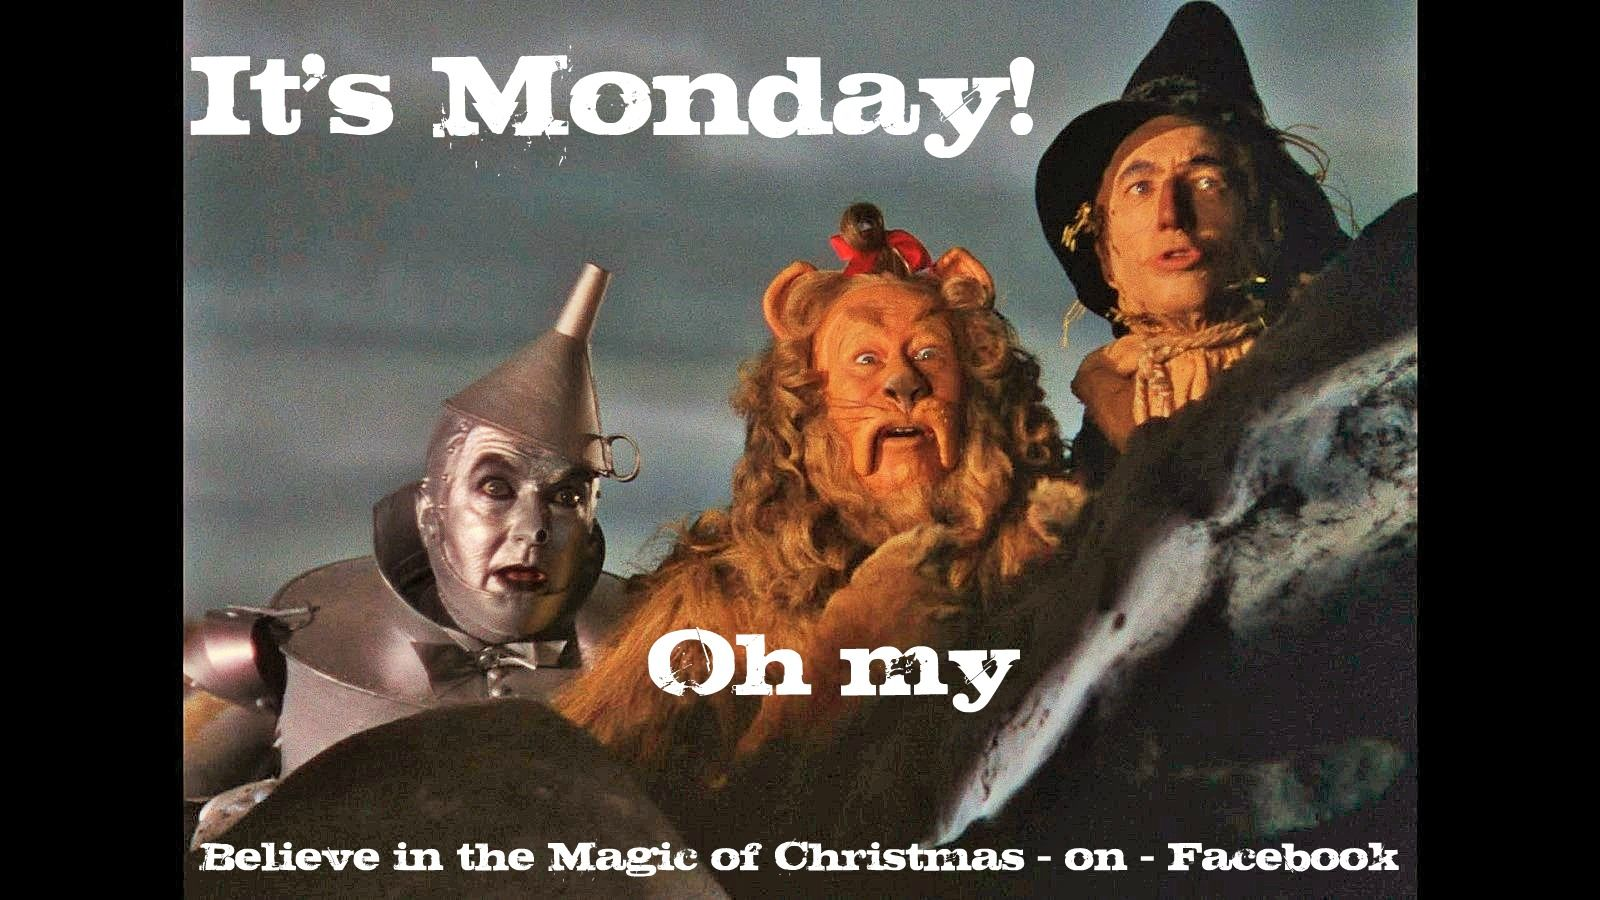 It's Monday... Oh my!! Good day quotes, Cheerful quotes